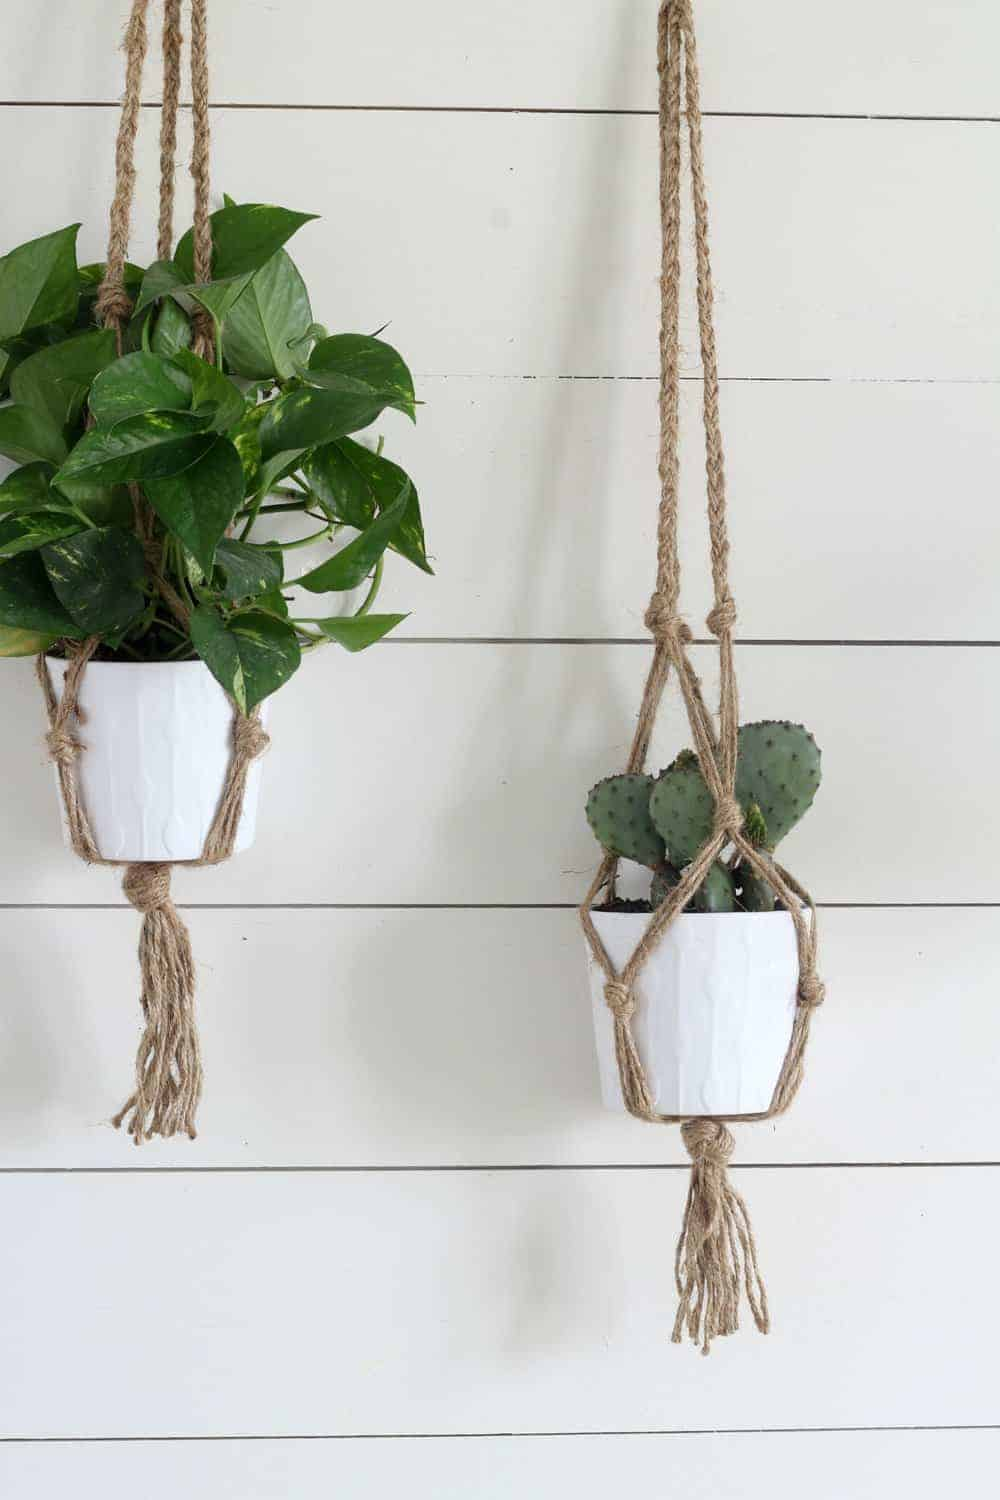 Simple Diy Macrame Plant Hanger With Video Tutorial Farmhouse On Boone Boone Diy Farmhouse Han In 2020 Macrame Plant Hanger Diy Macrame Plant Hanger Plant Hanger